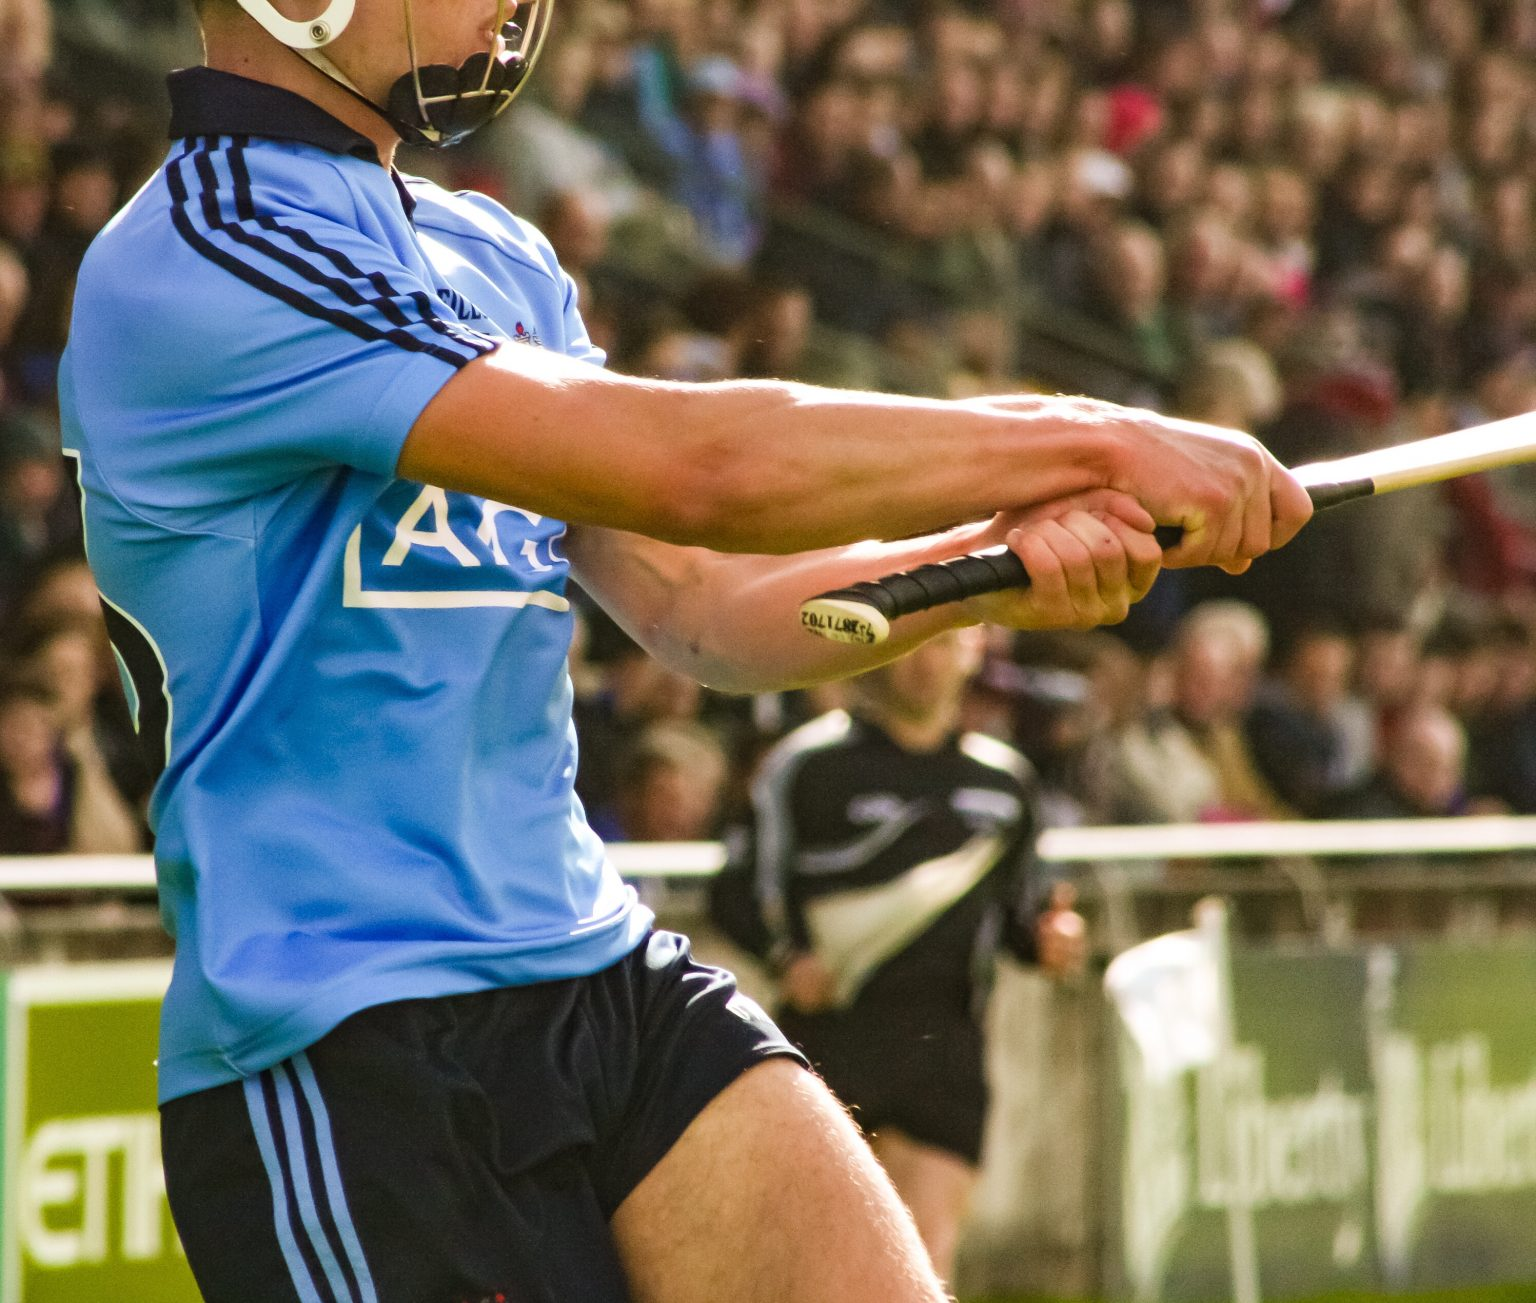 JOHNNY McCAFFREY AND PETER KELLY BACK IN THE DUBLIN HURLING FOLD